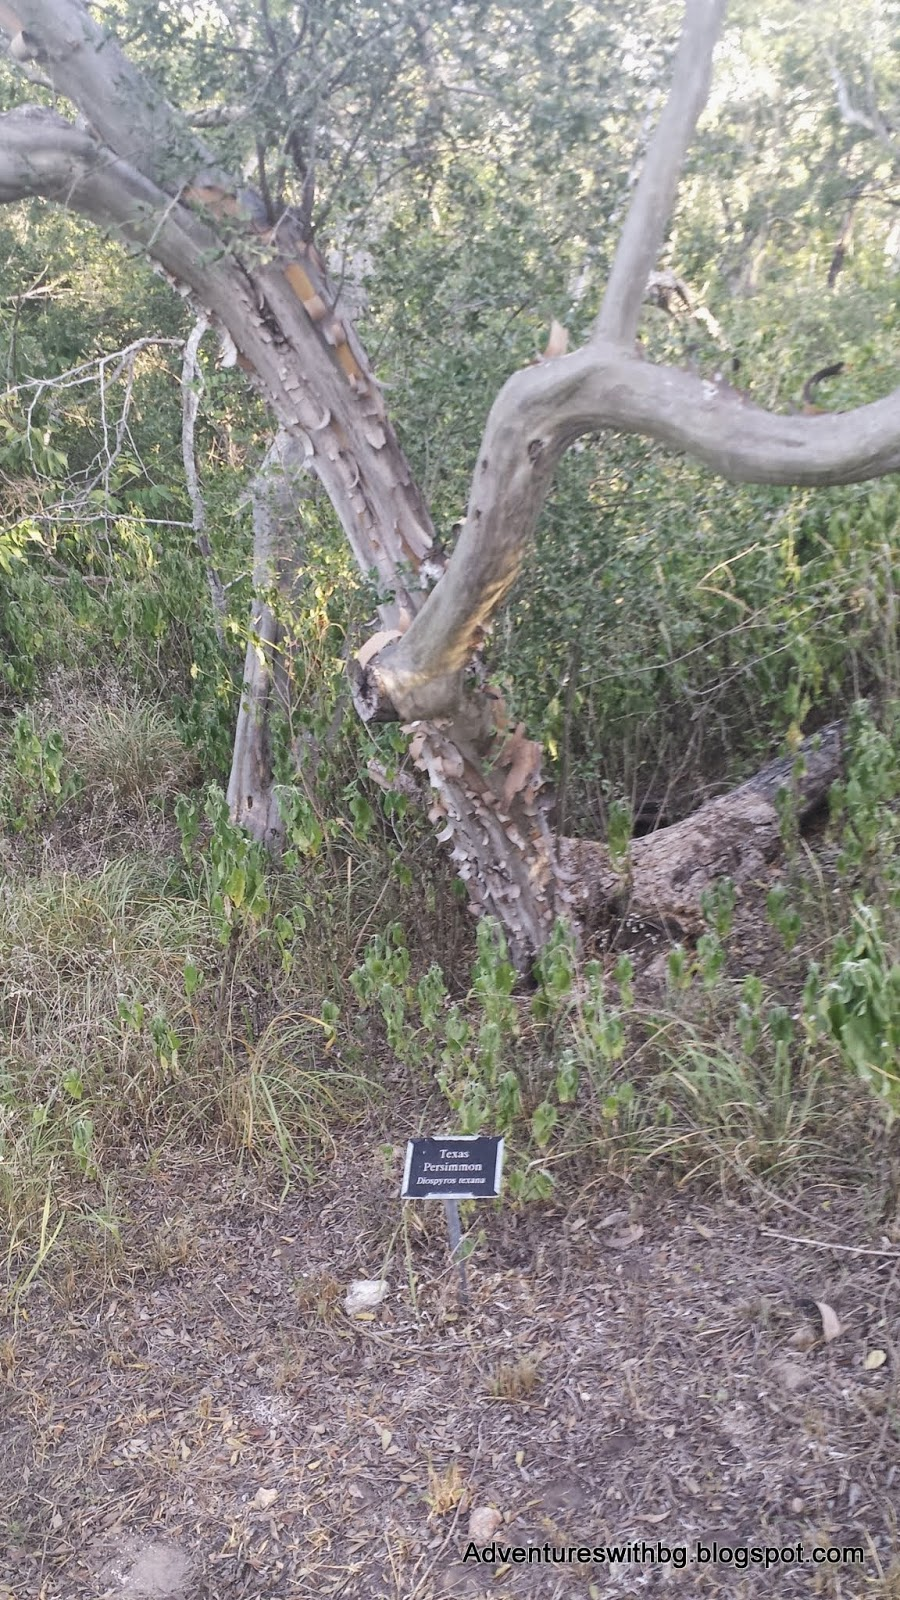 A Persimmon Tree and an Identification Placard